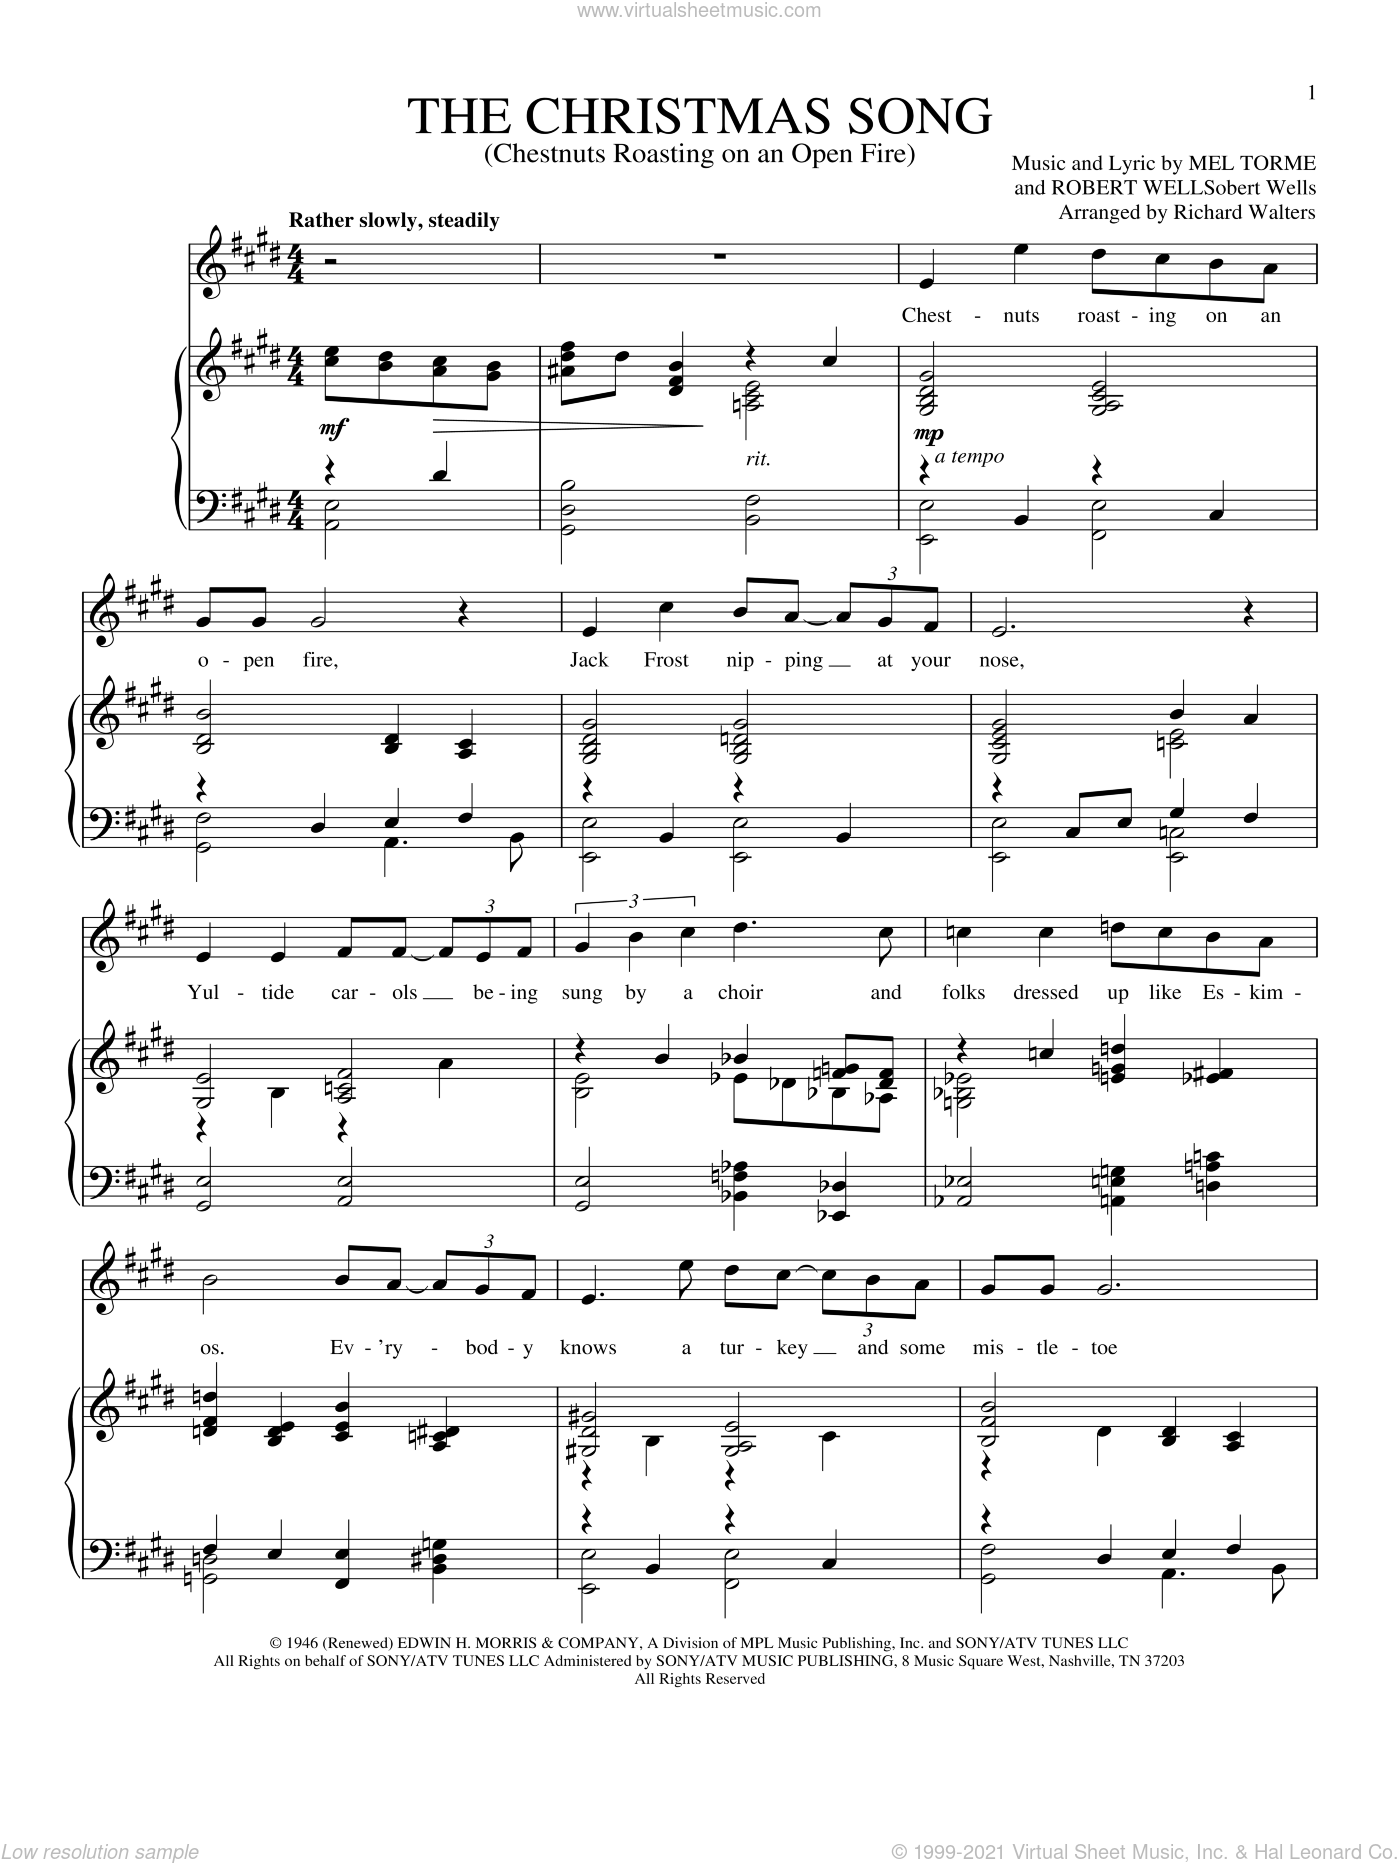 The Christmas Song (Chestnuts Roasting On An Open Fire) sheet music for voice and piano by Mel Torme and Robert Wells, intermediate skill level